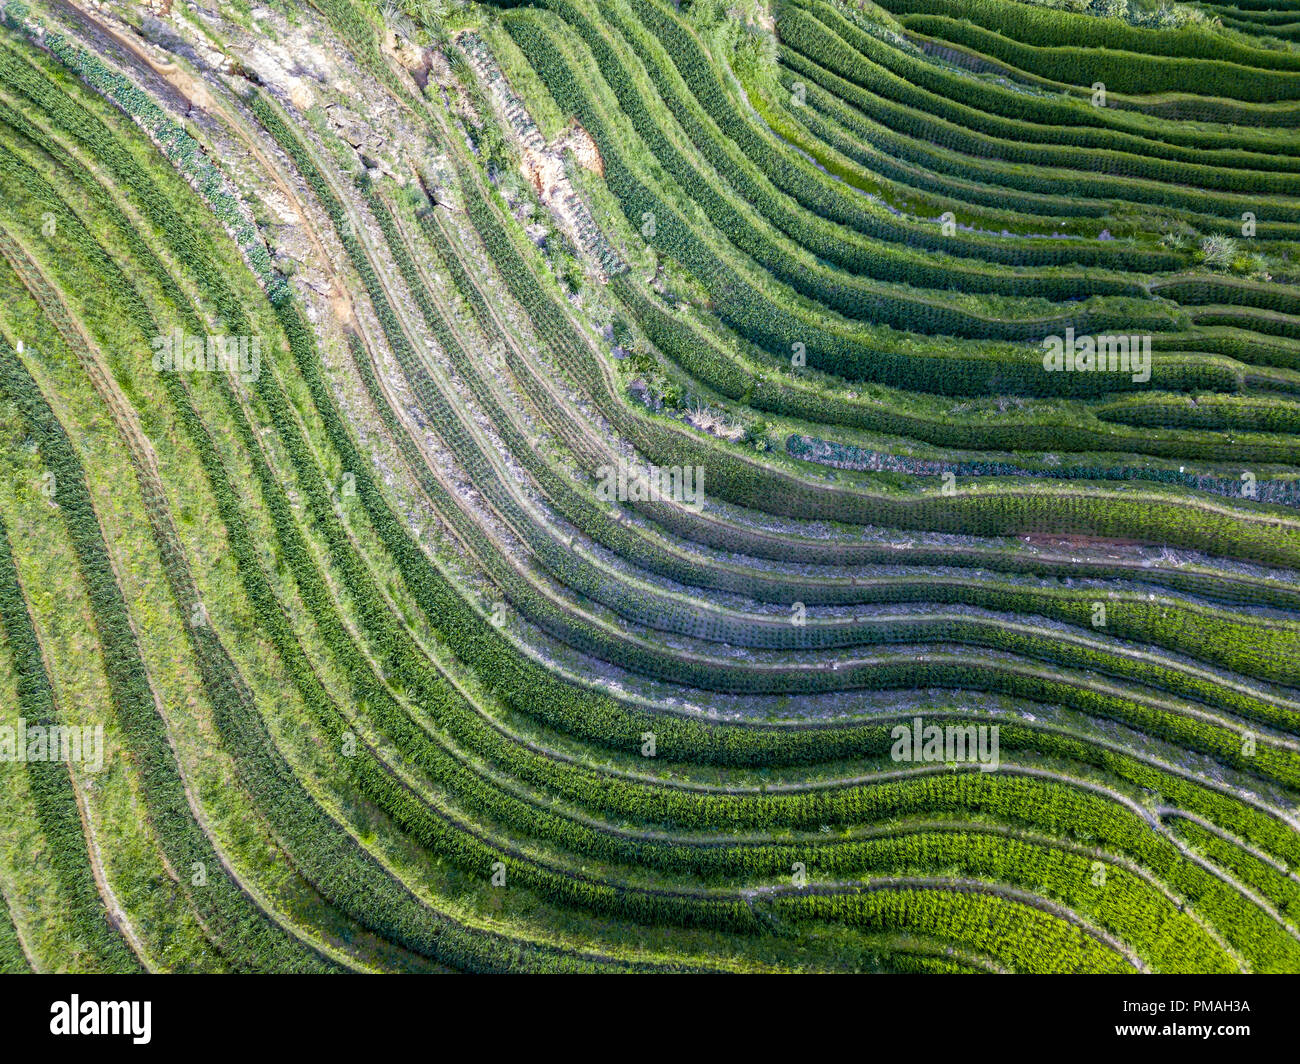 Longji Terraced Rice Fields means Dragon's Backbone (Longji). The rice terraces resemble a dragon's scales, while the peaks of the mountain range rese - Stock Image